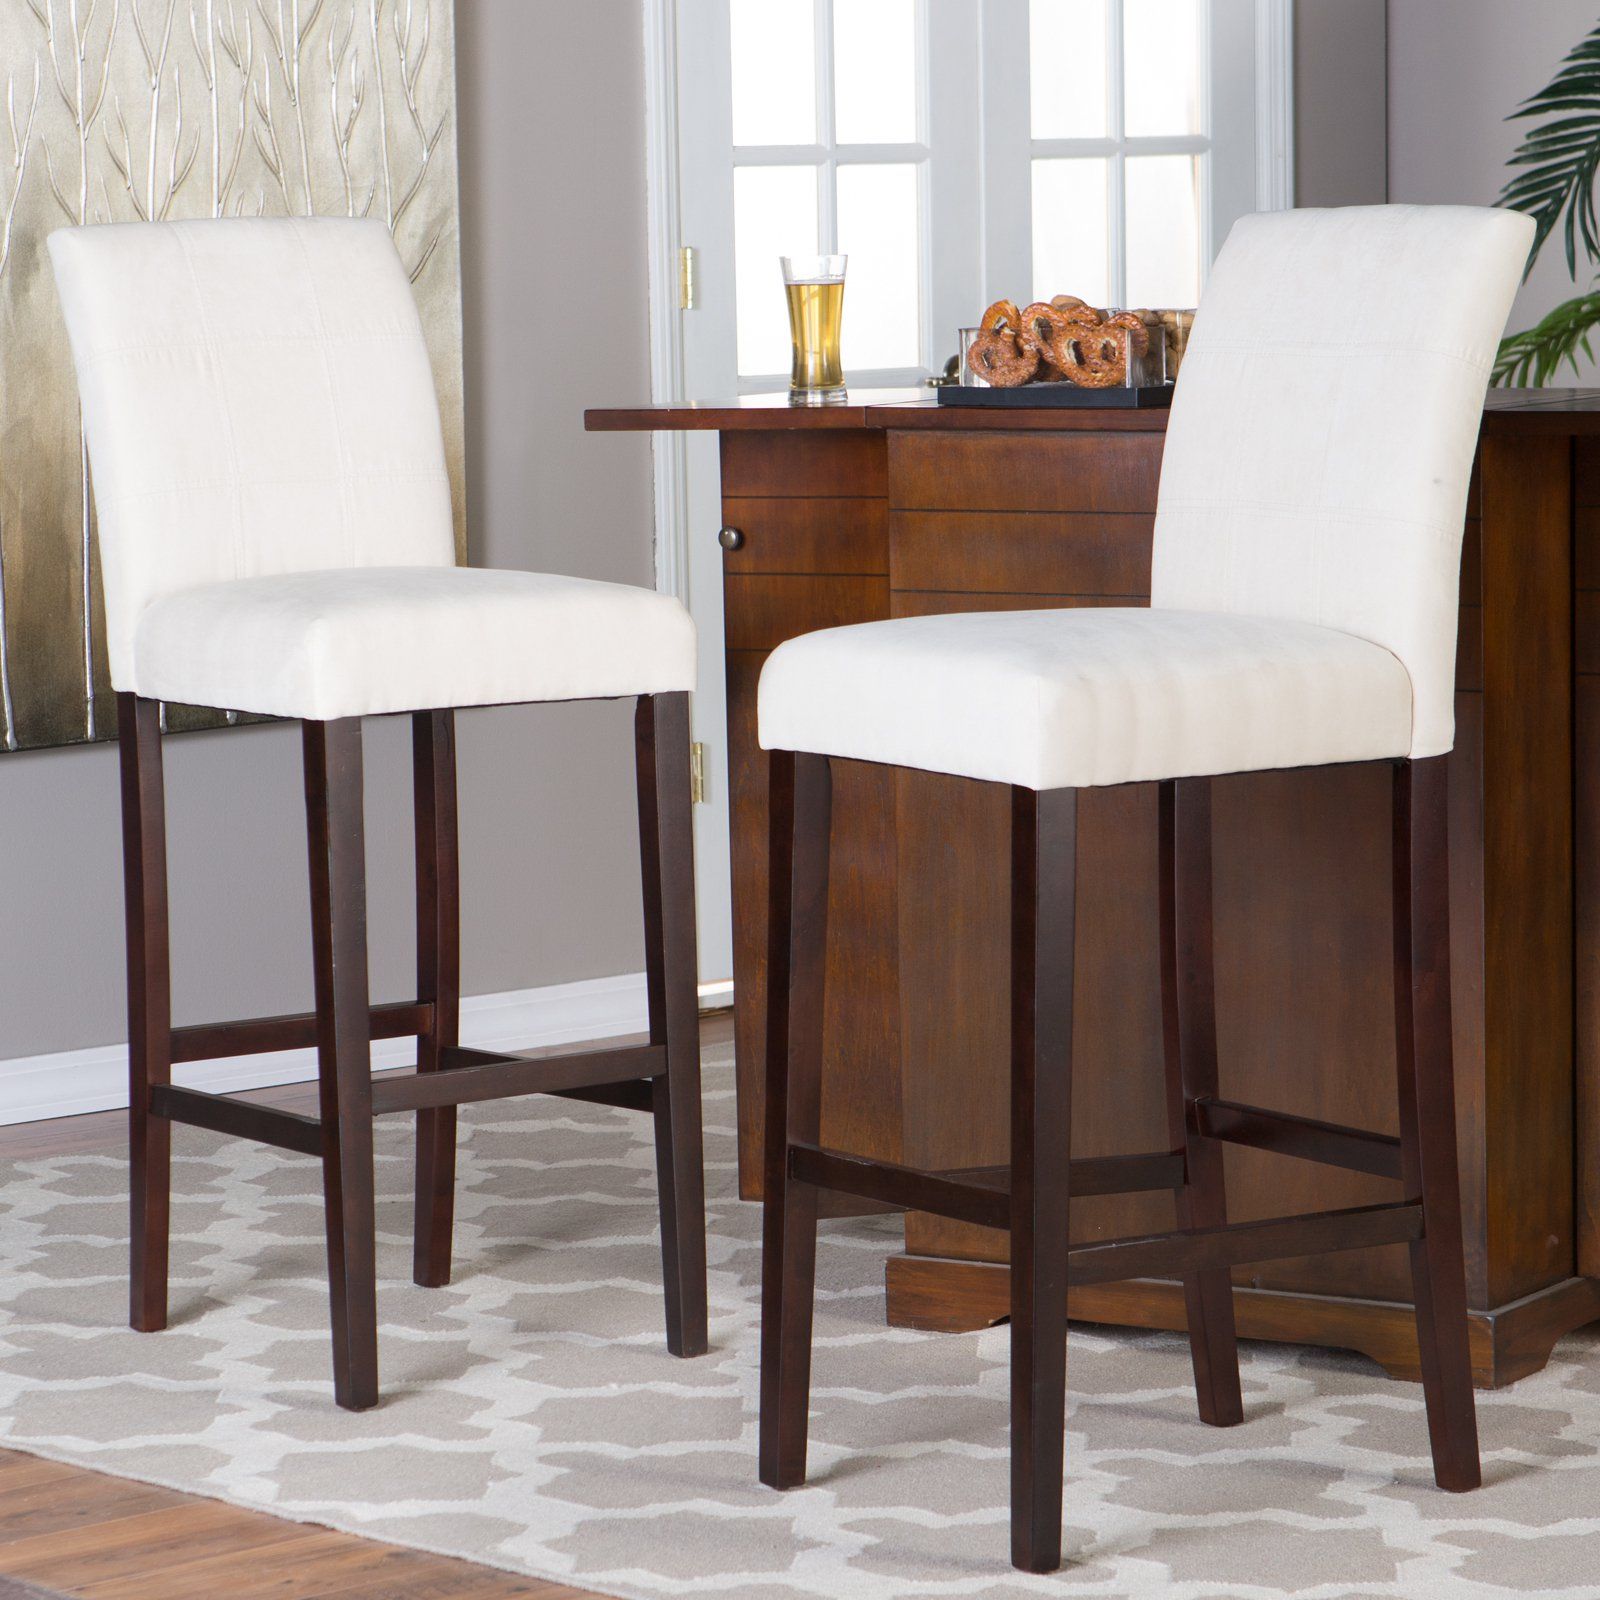 extra tall bar stools Finley Home Palazzo Extra Tall Bar Stool   Set of 2   Walmart.com extra tall bar stools